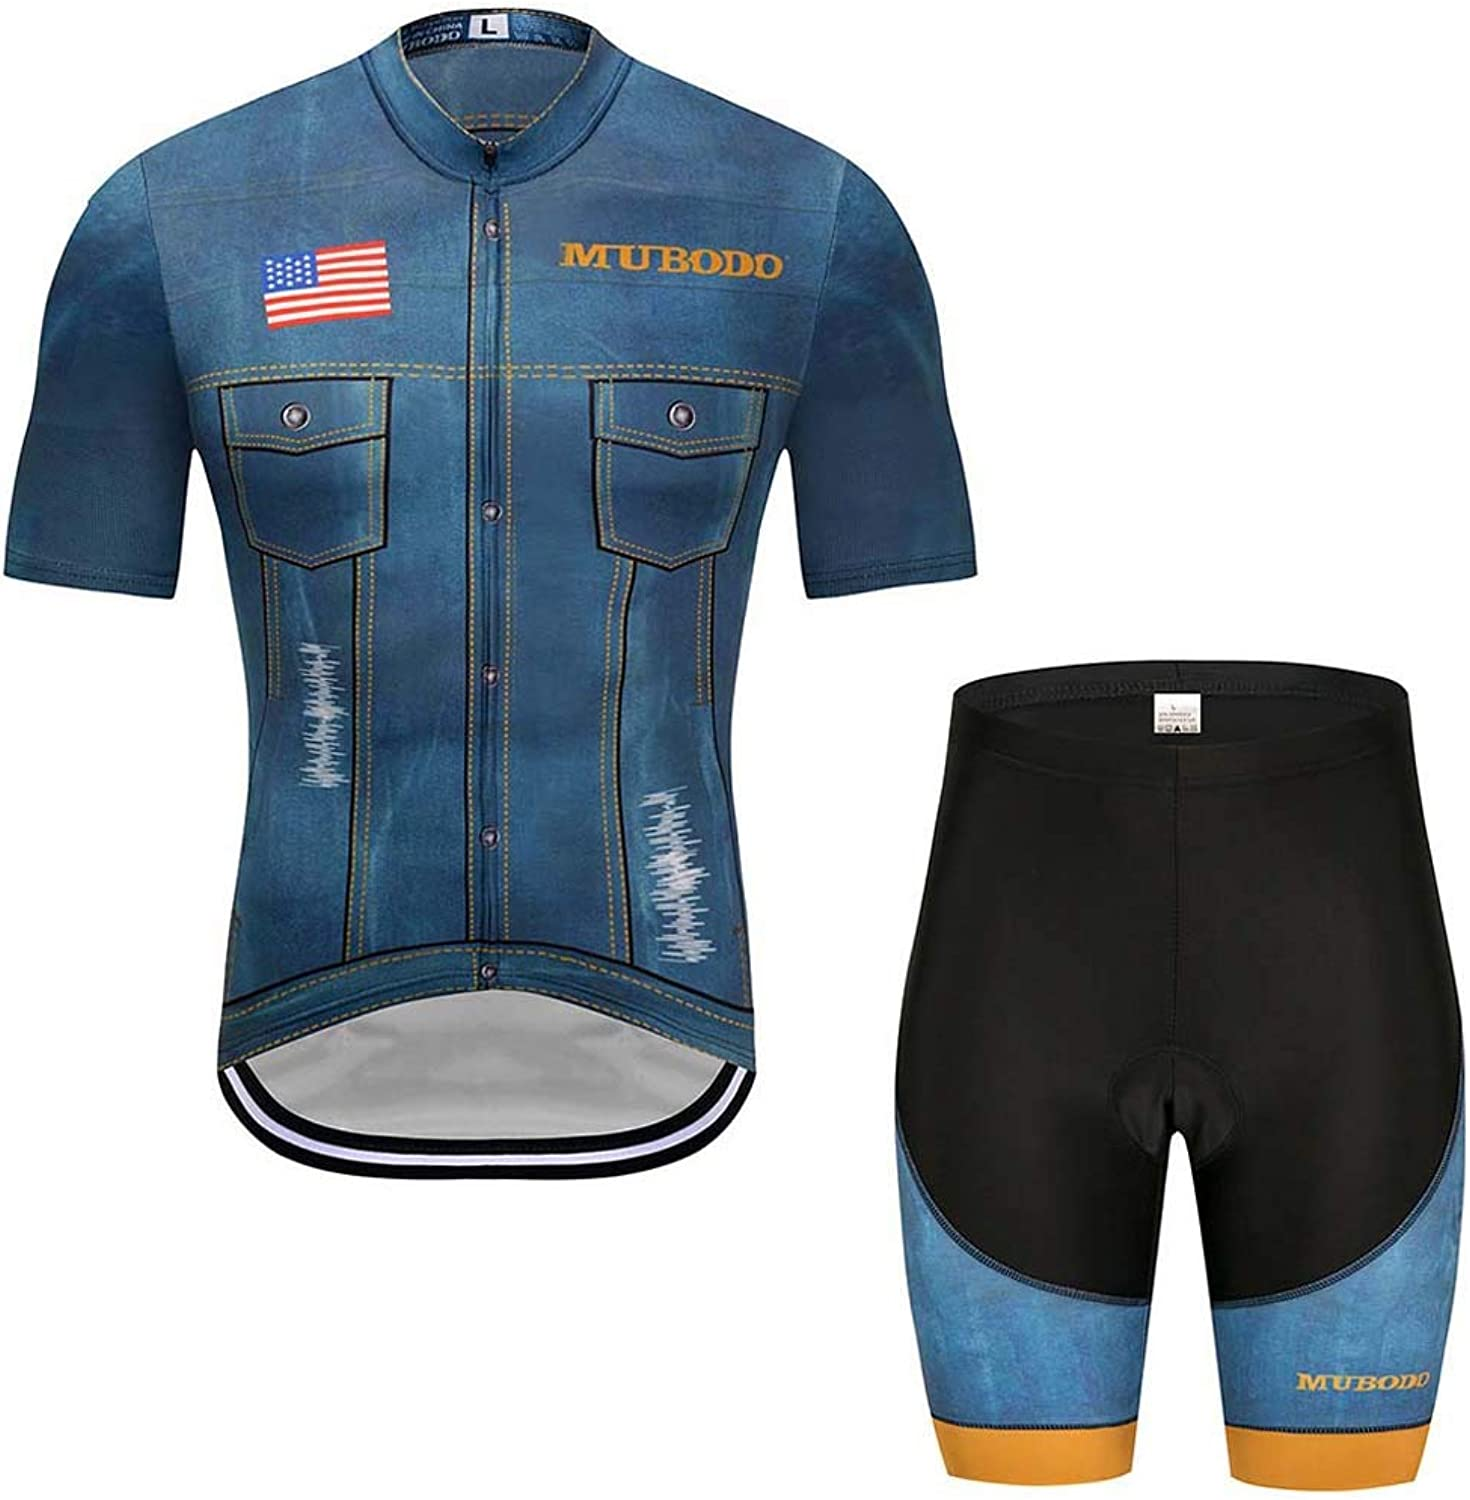 Cycling Shorts, Cycling Jersey Men Waterproof Soft Fitness Clothes QuickDry for Outdoor Sports MTB Road Bicycle,L